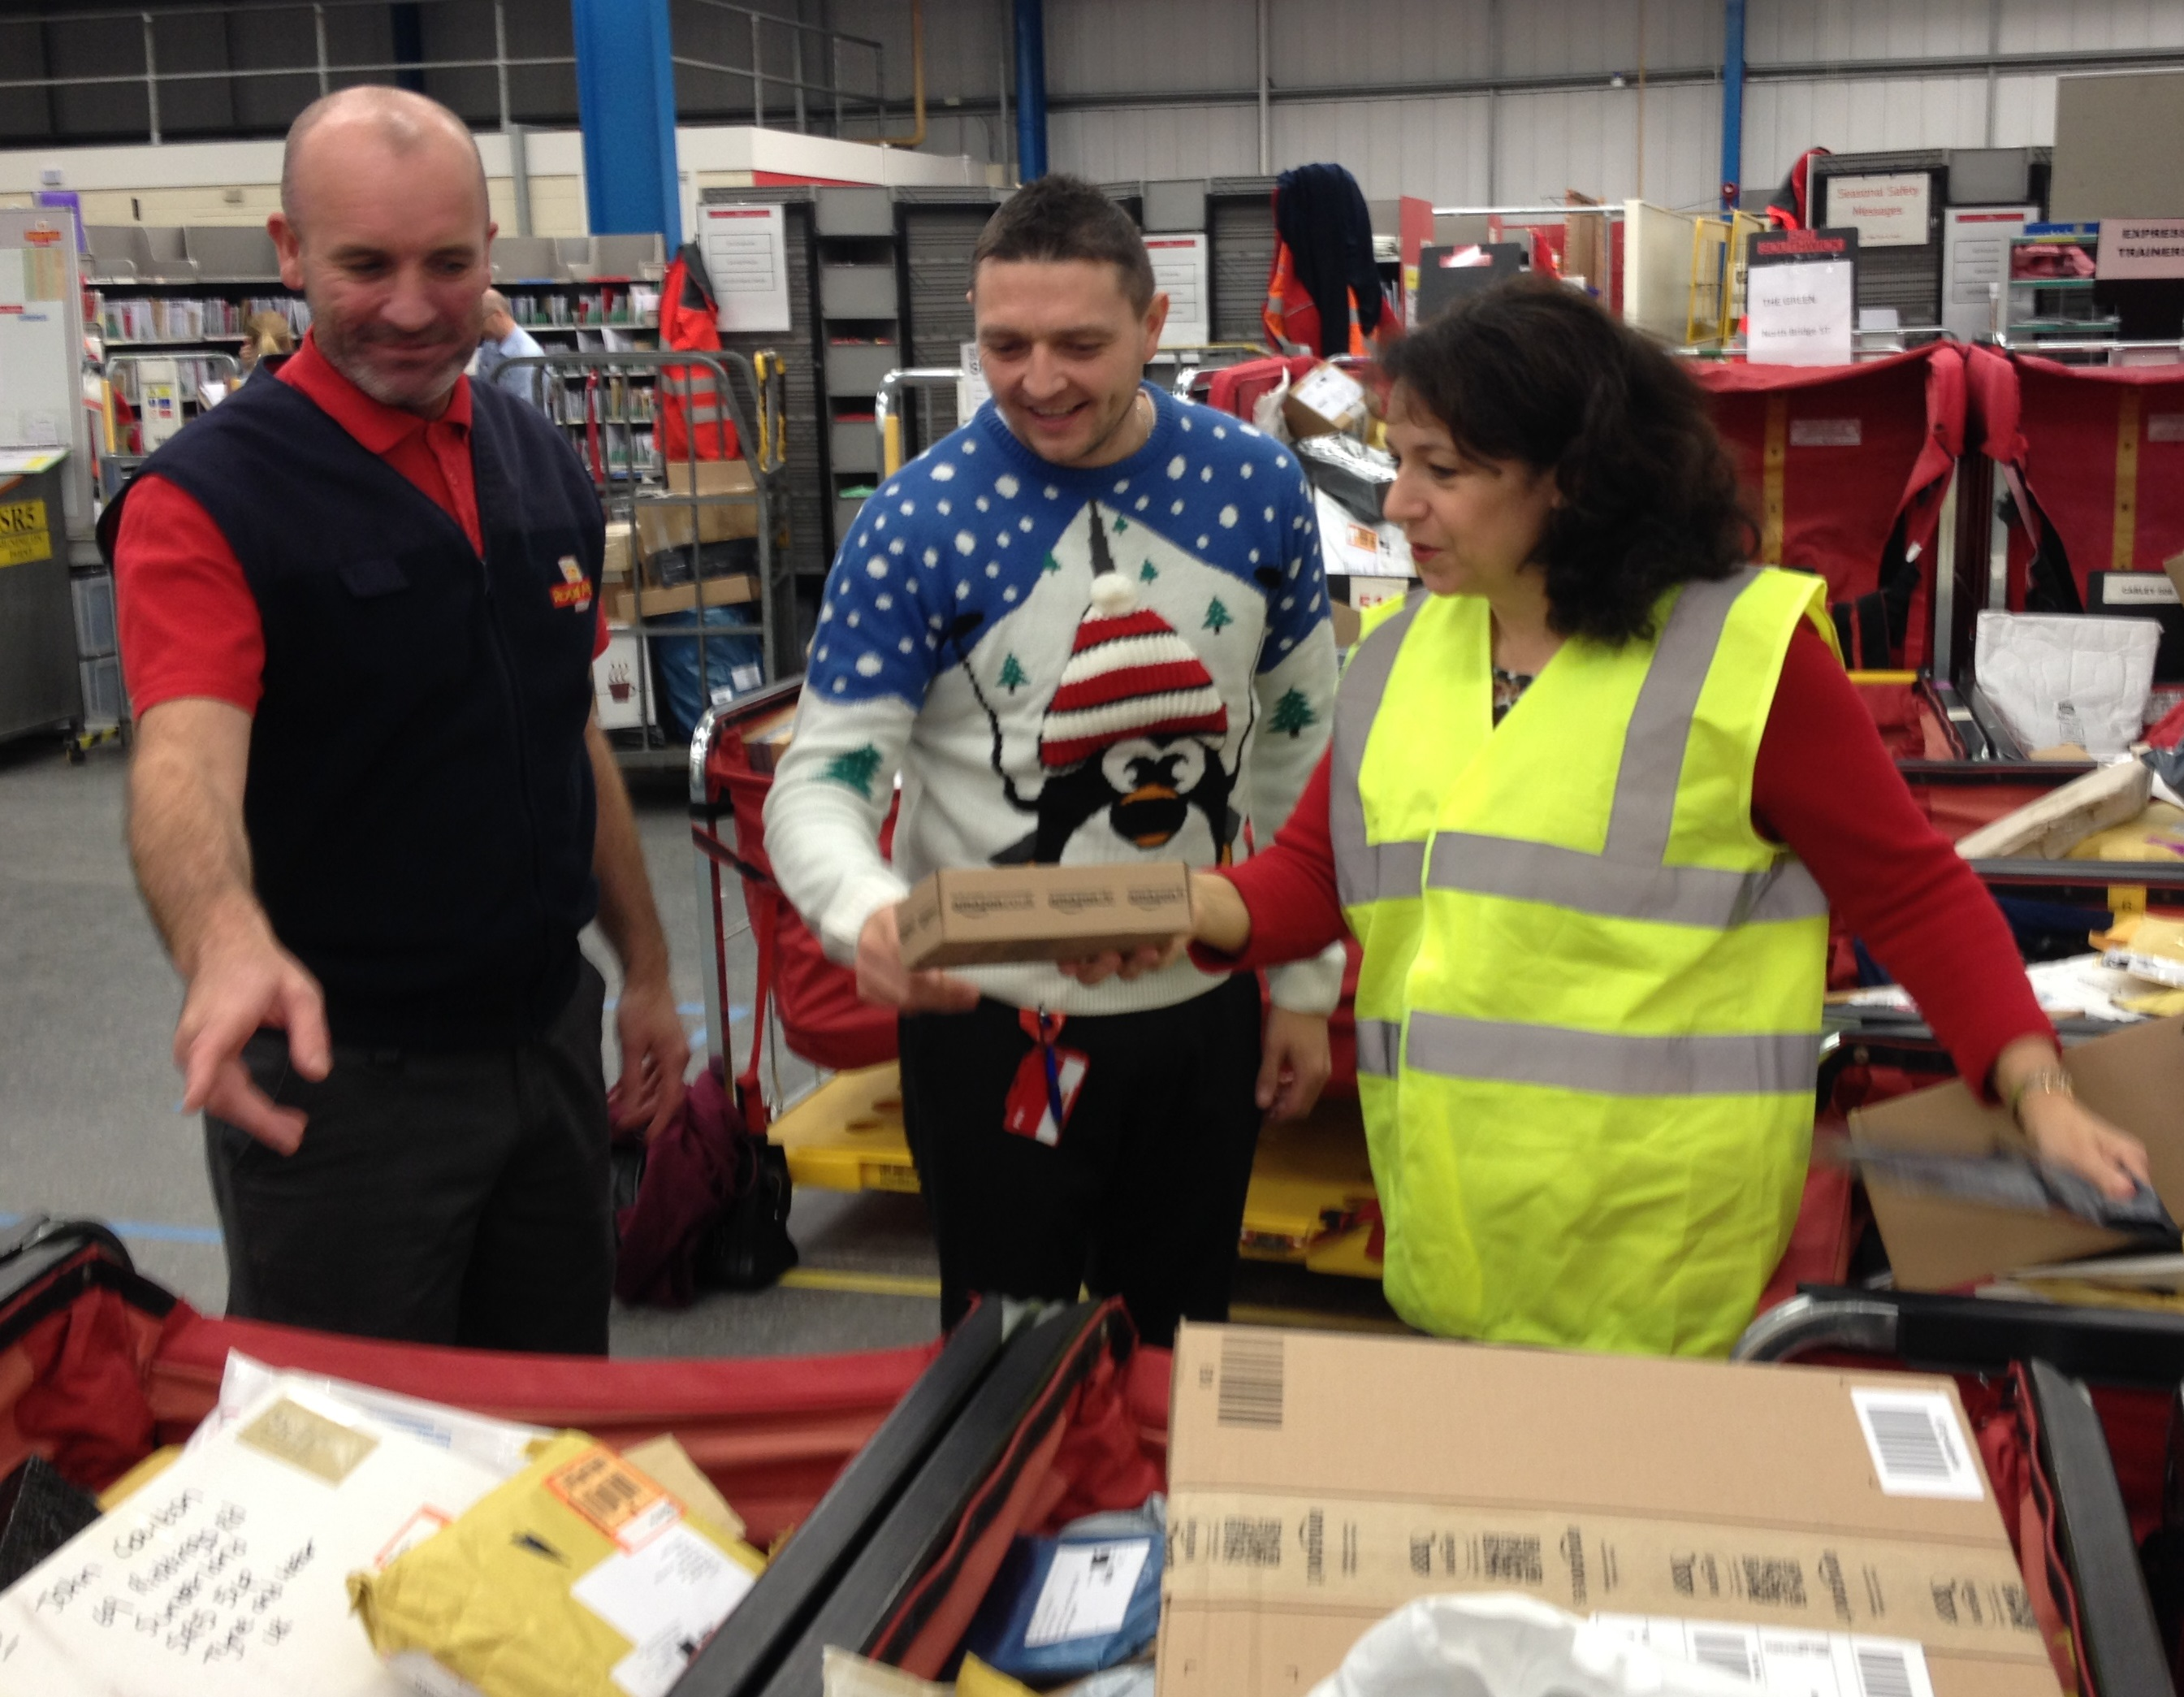 Helping Royal Mail Delivery Office with the Christmas rush - Julie ...